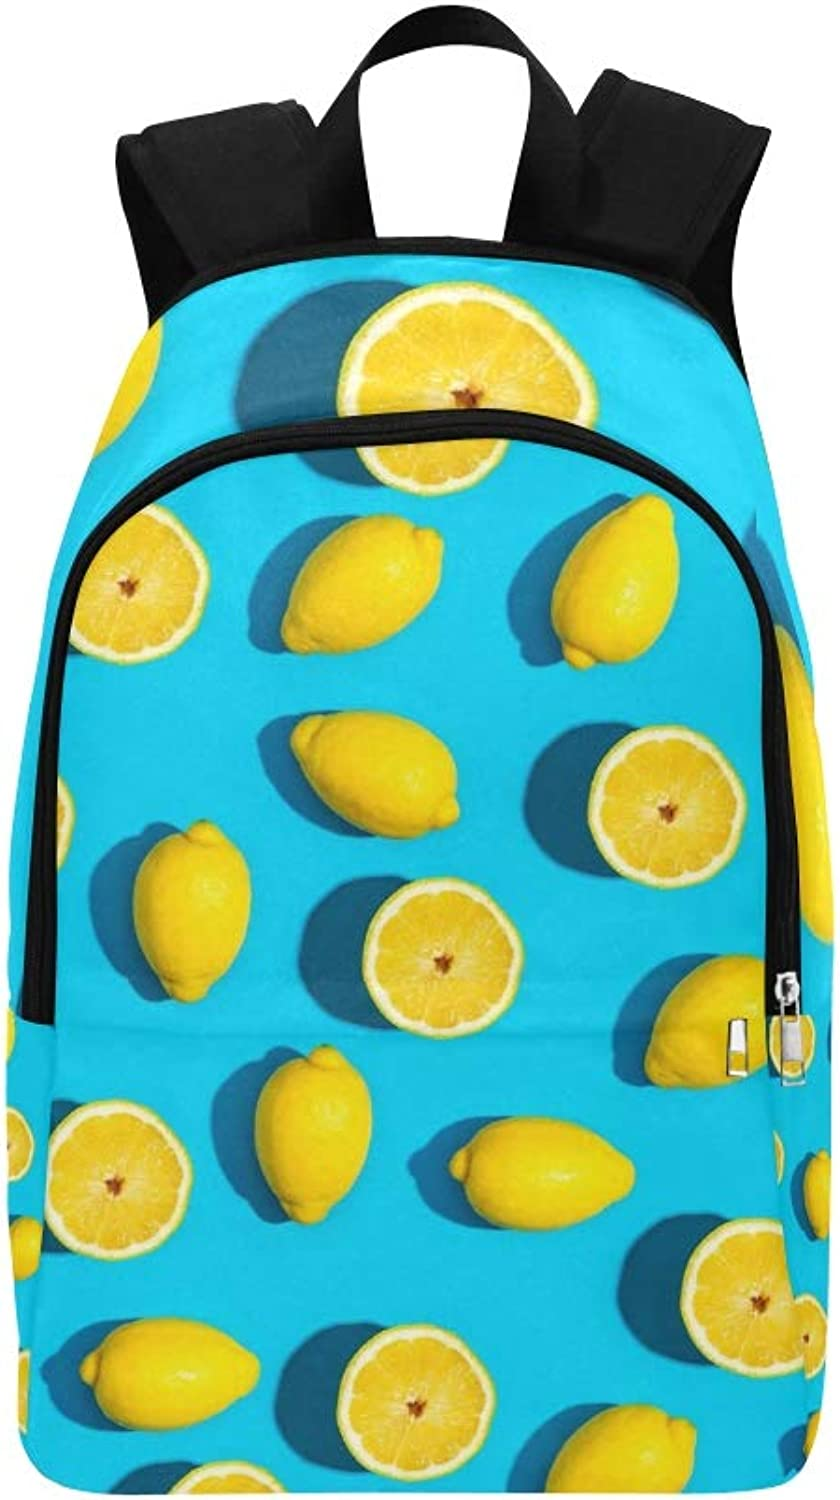 Fresh Lemon On Vivid blueee Casual Daypack Travel Bag College School Backpack for Mens and Women